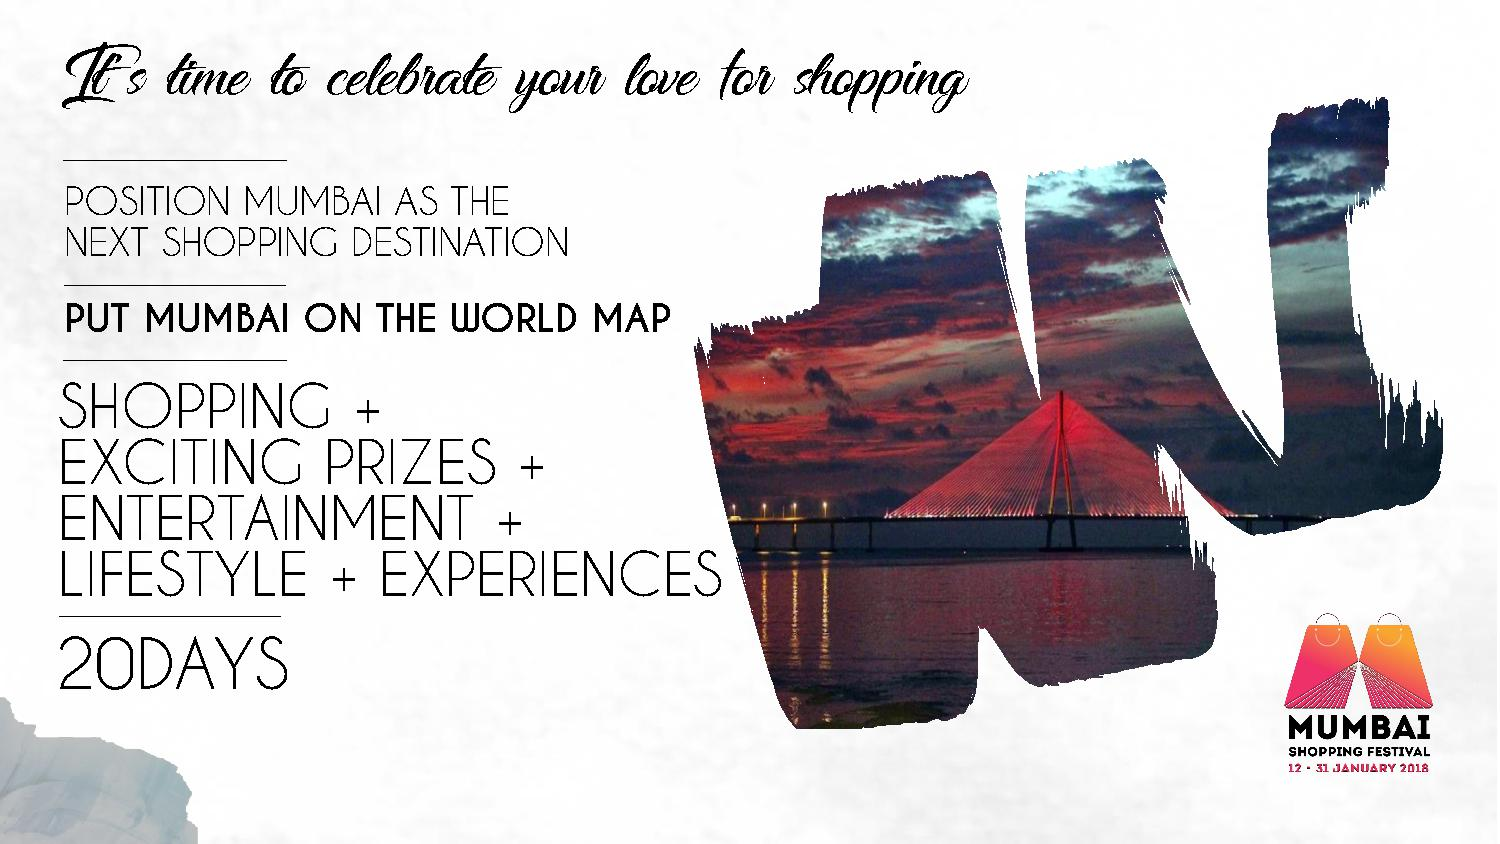 It's time to celebrate your love for shopping POSITION MUMBAI AS THE NEXT SHOPPING DESTINATION PUT MUMBAI ON THE WORLD MAP SHOPPING + EXCITING PRIZES + ENTERTAINMENT + LIFESTYLE + EXPERIENCES 20DAYS